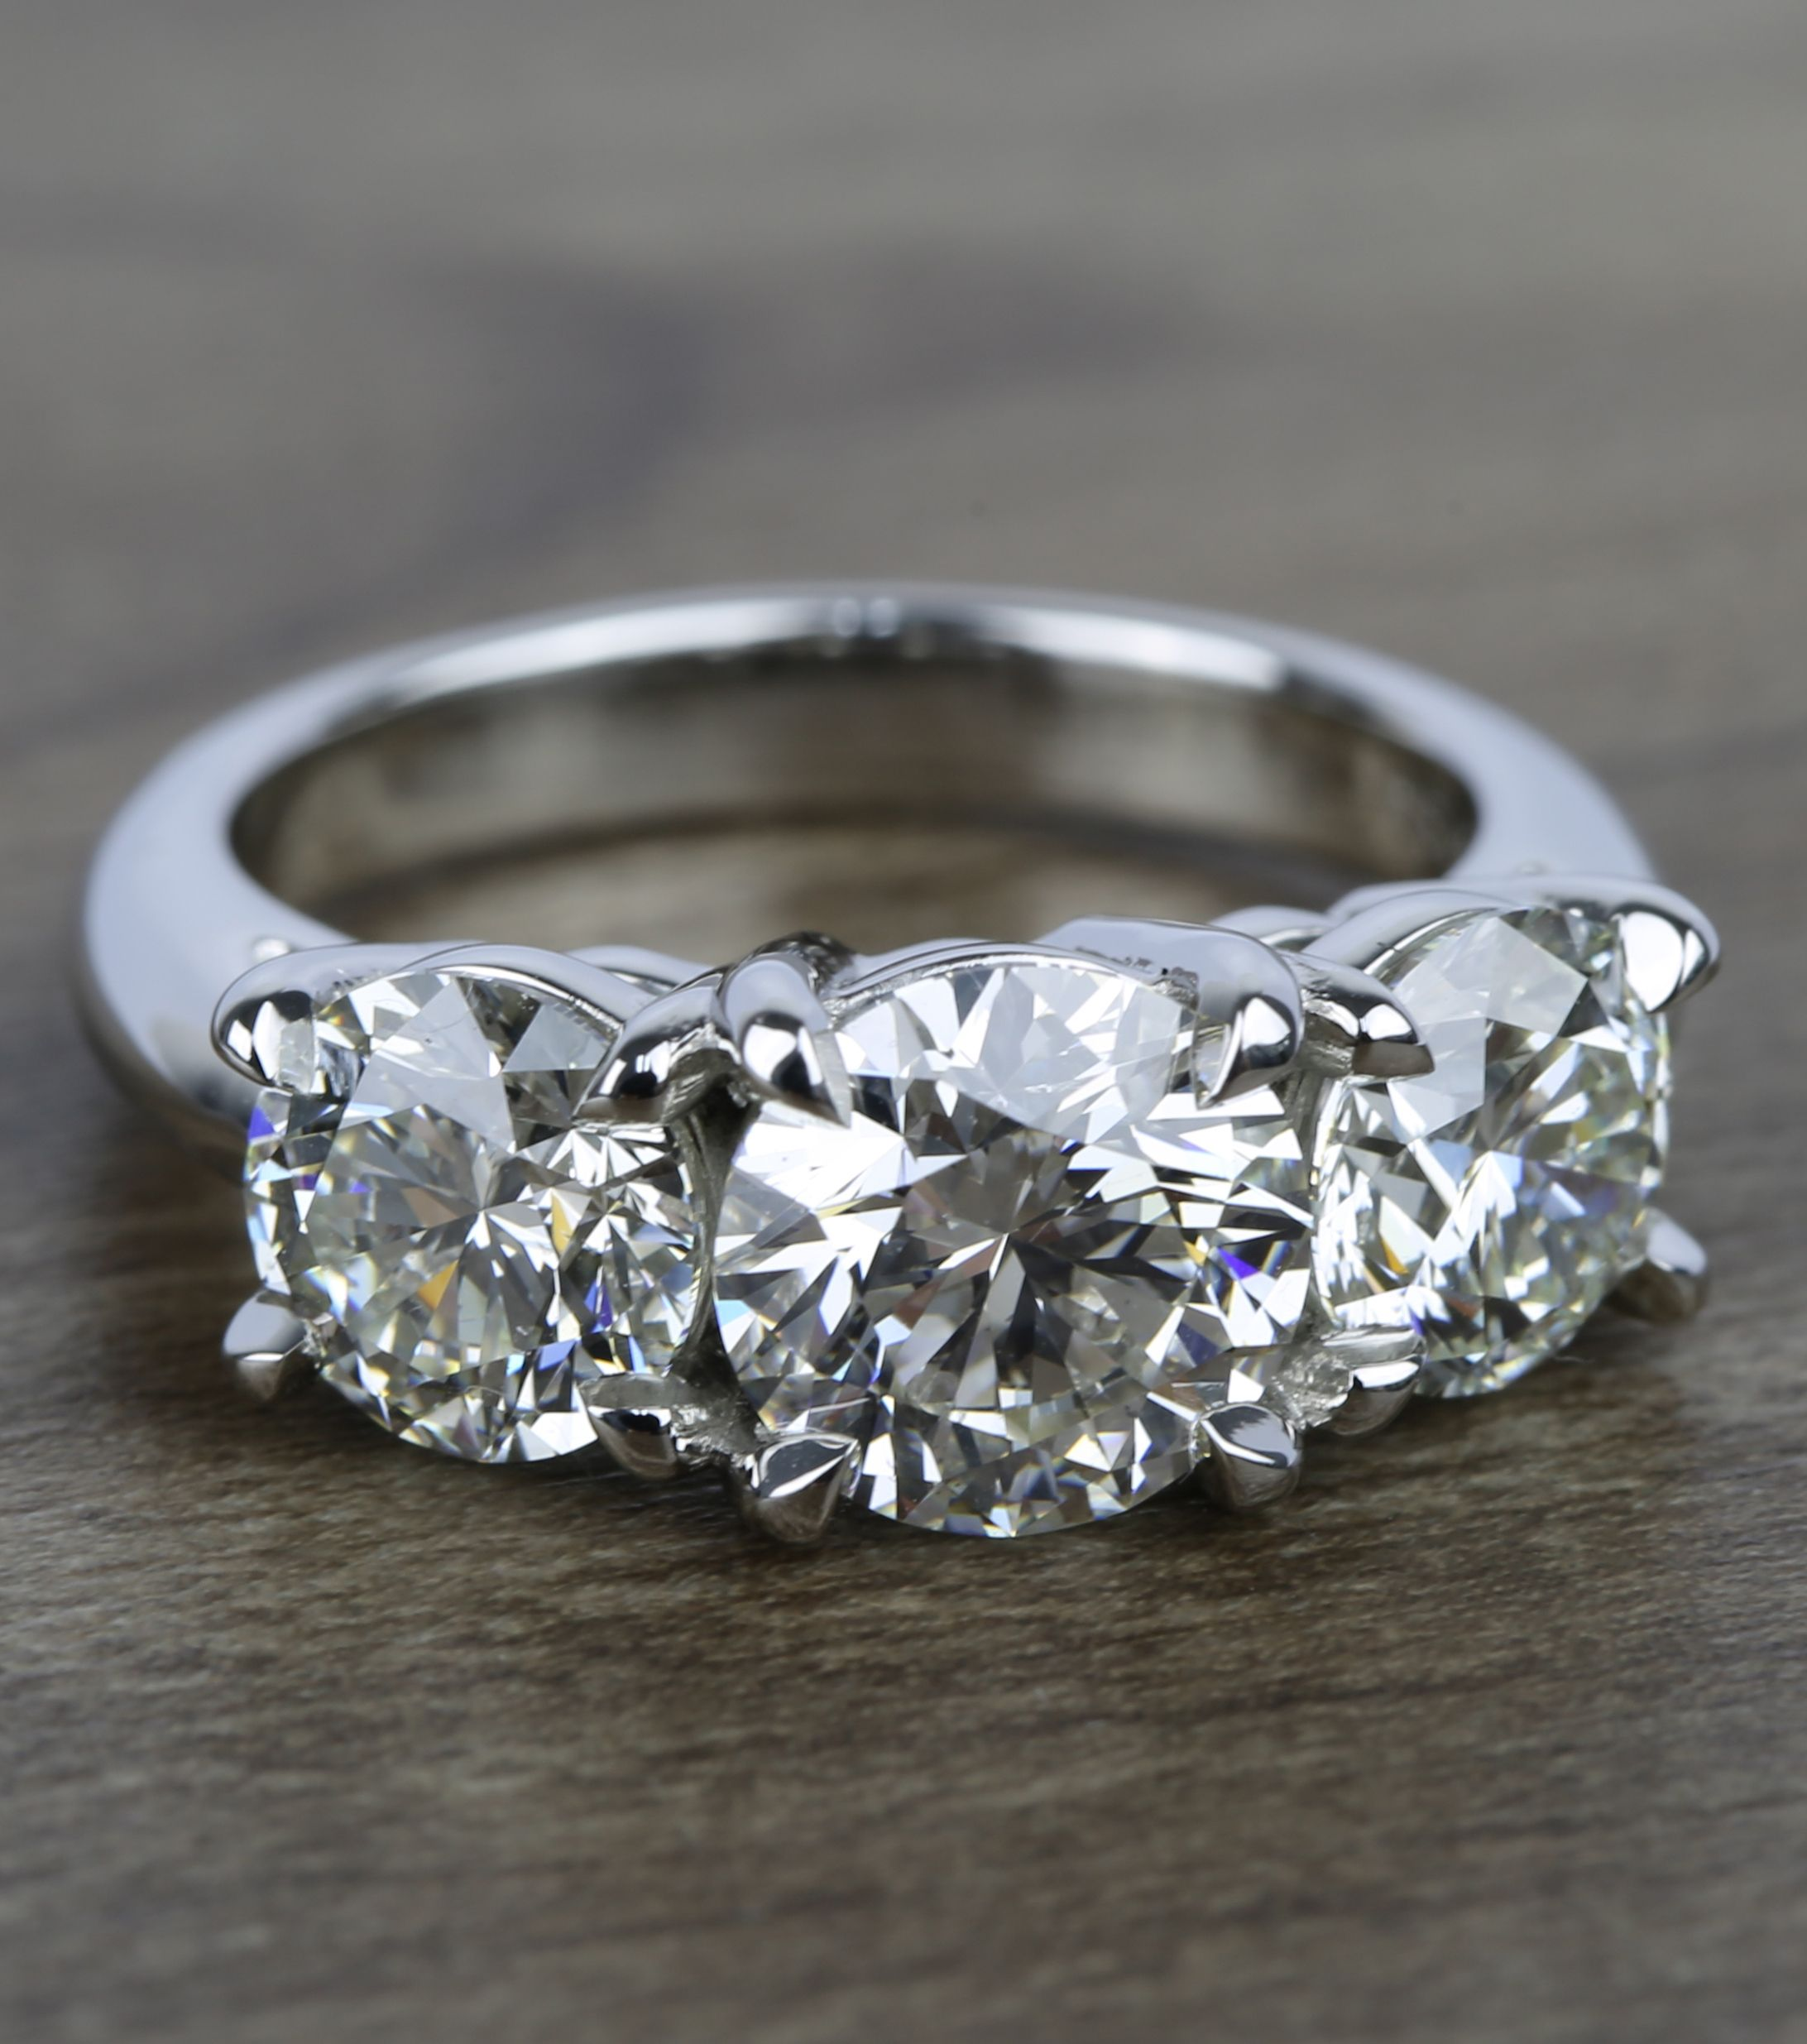 This Three Stone Platinum Engagement Ring Boasts A 2 Carat Center Diamond And Incorporates